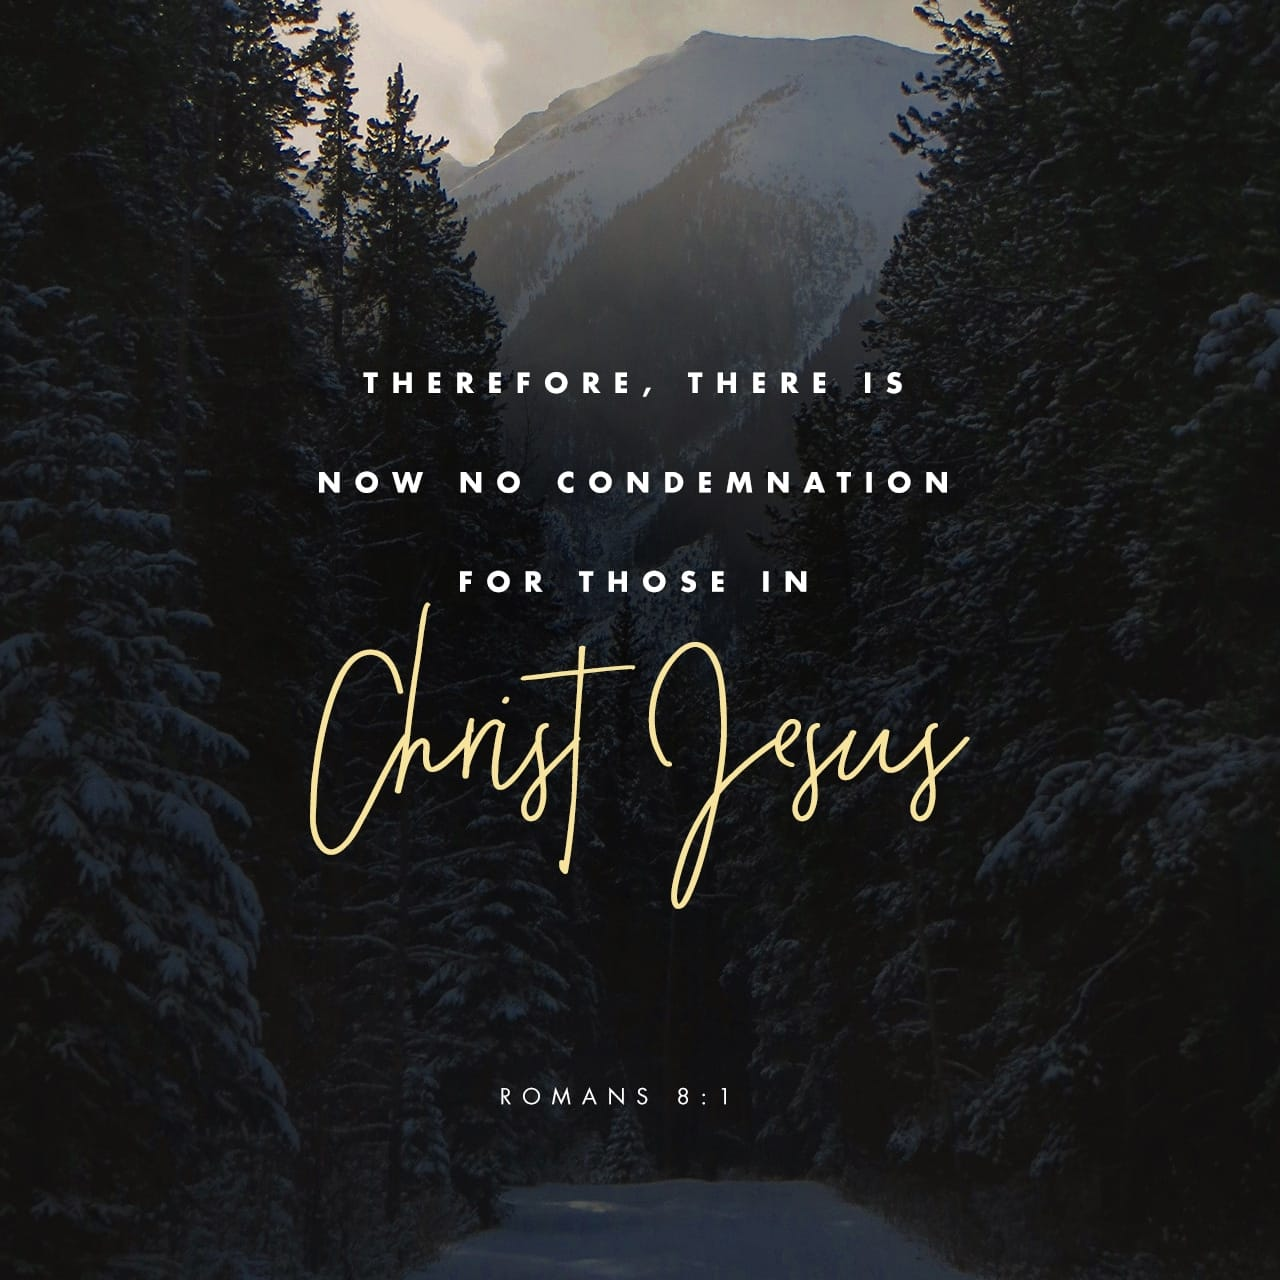 Therefore, there is now no condemnation for those who are in Christ Jesus, Romans 8:1 NIV https://romans.bible/romans-8-1